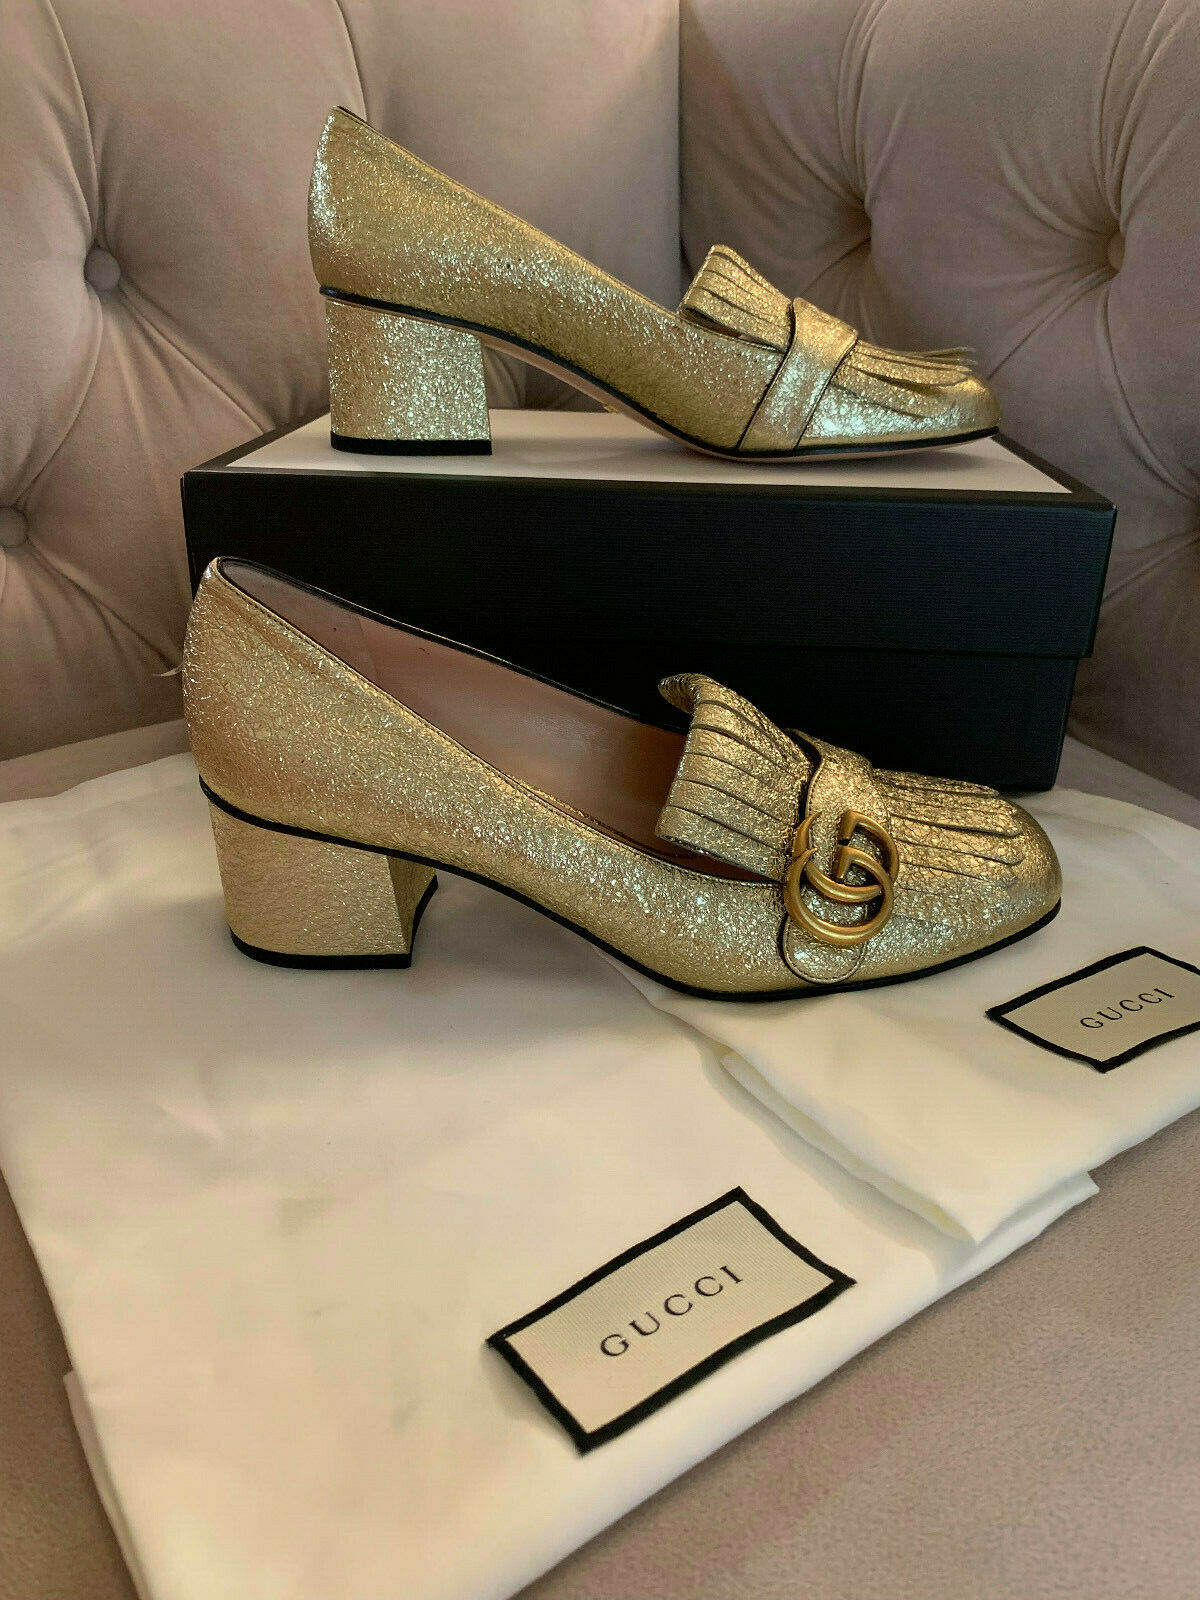 New Gucci Women GG Marmont 55mm Leather Loafer Pumps Platino Gold Sz 40 NIB $830